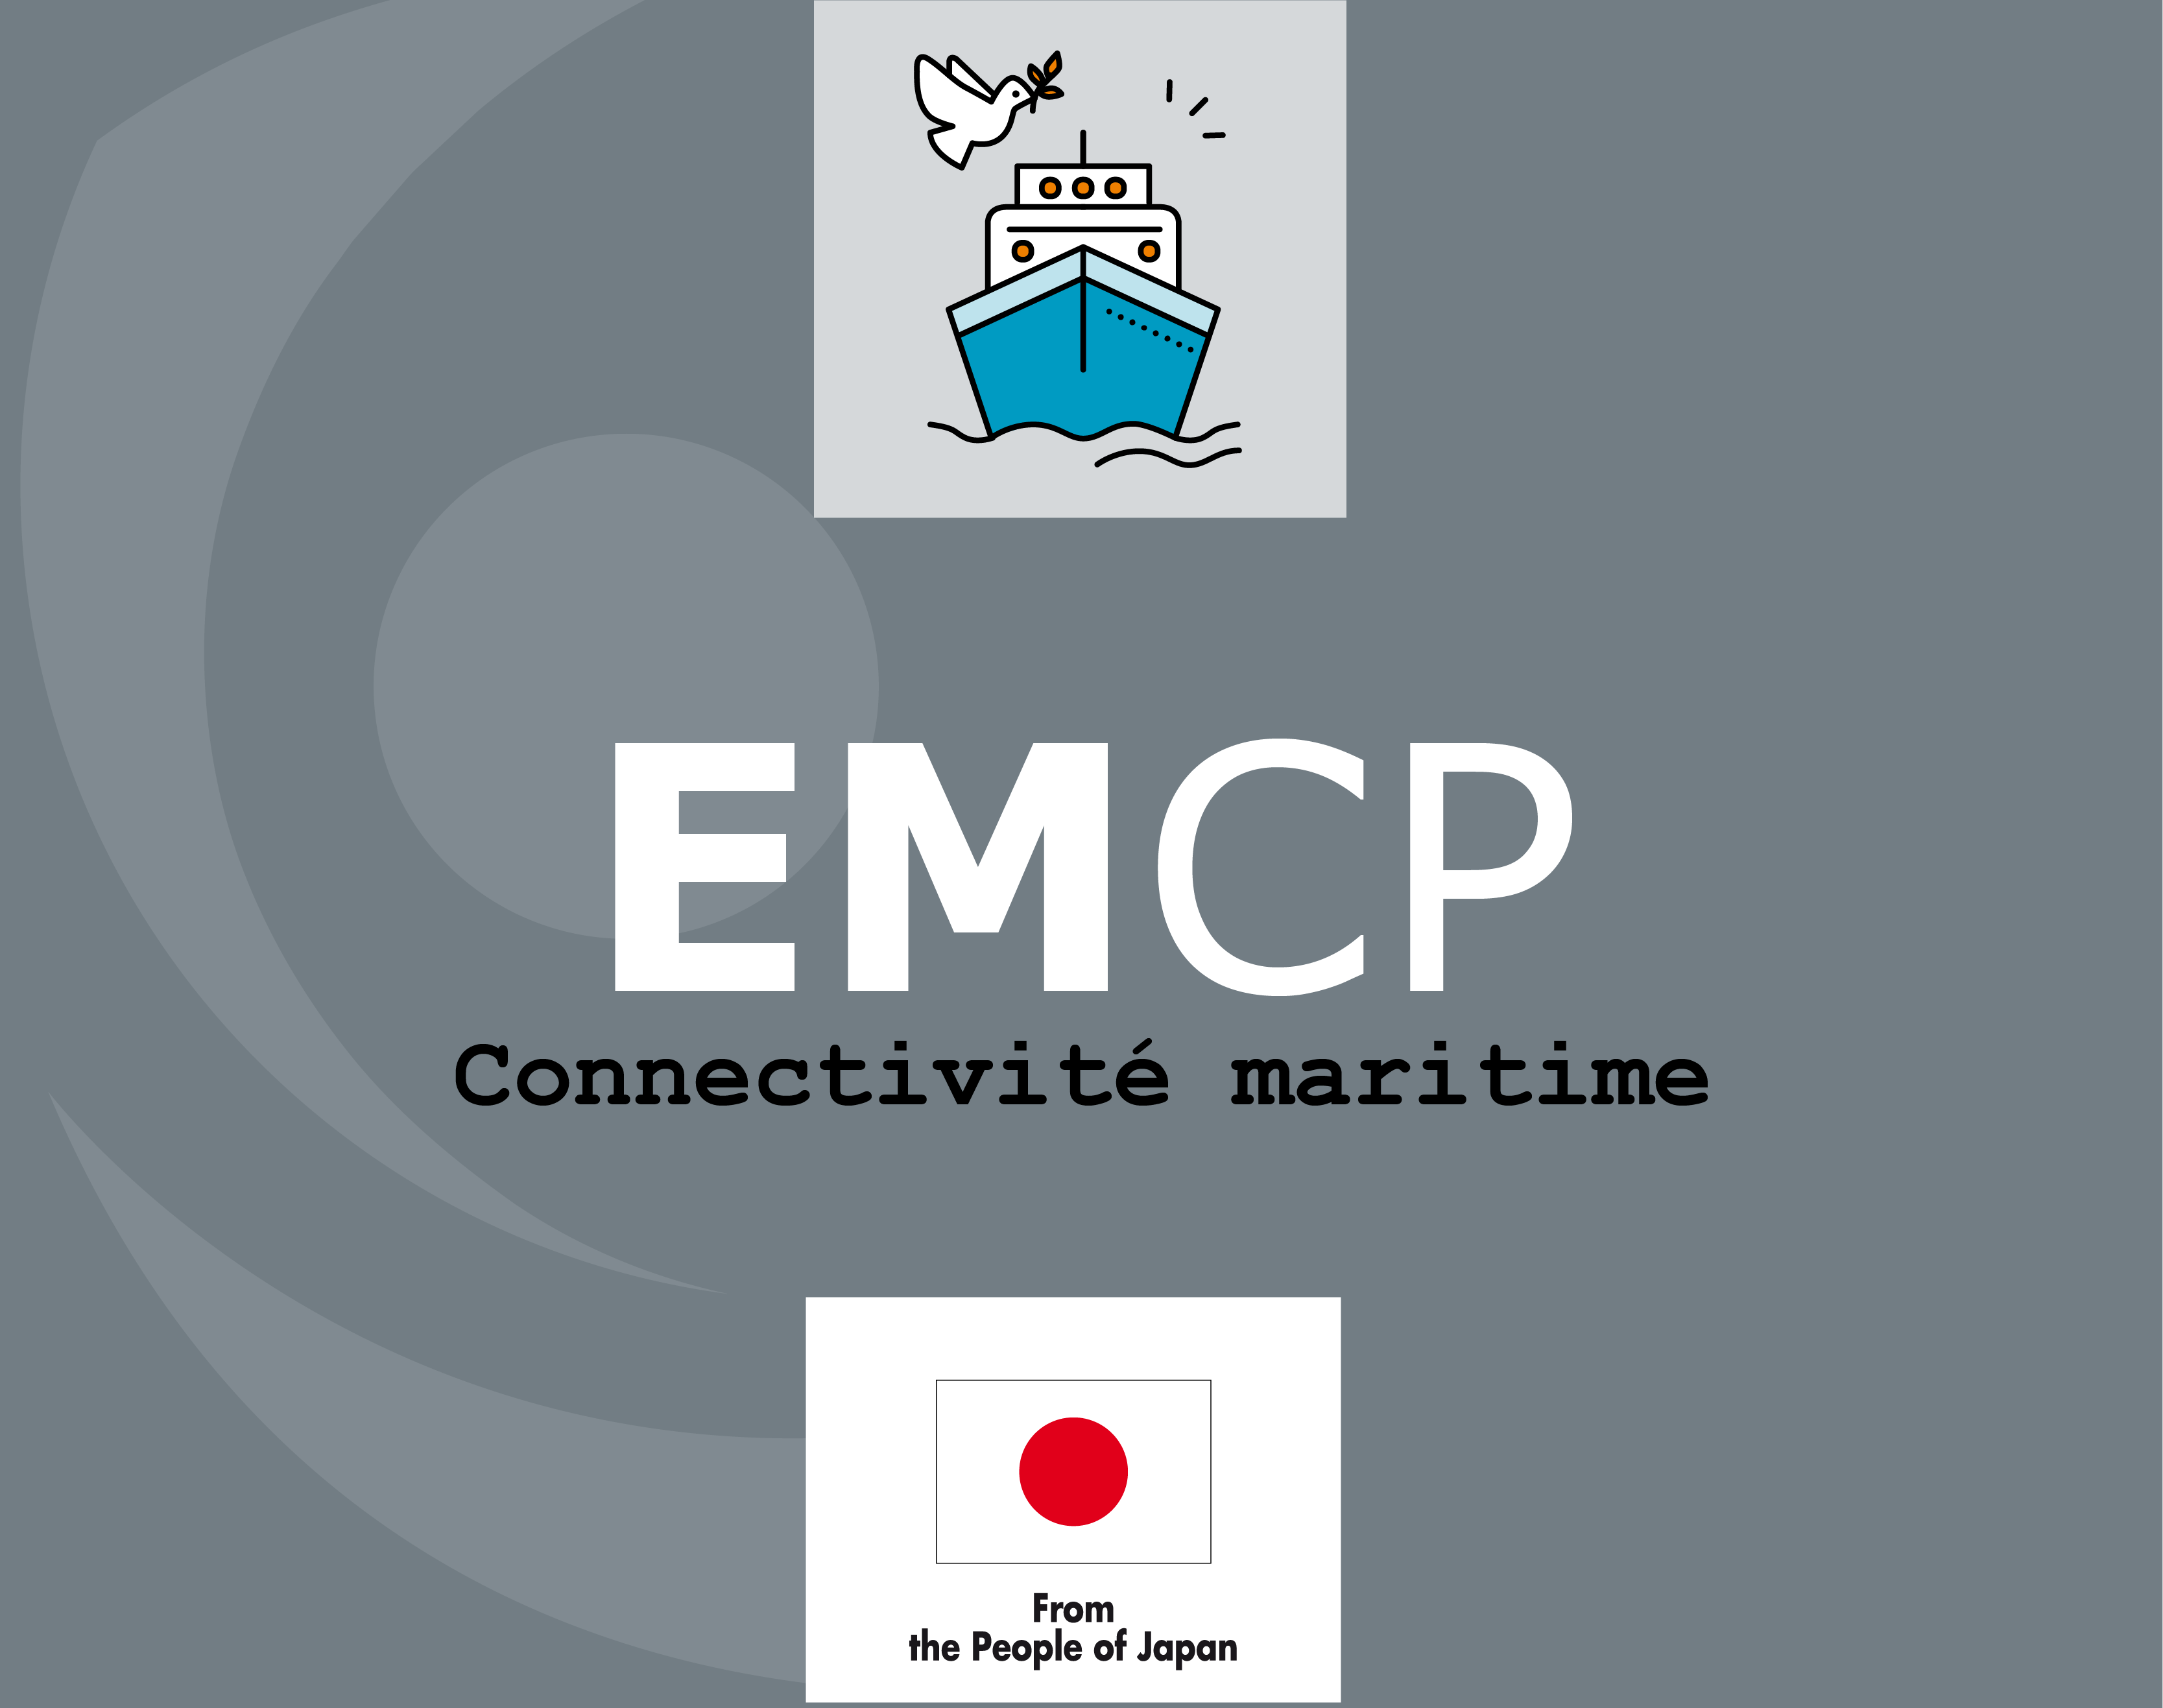 EMCP CONNECTIVITE MARITIME